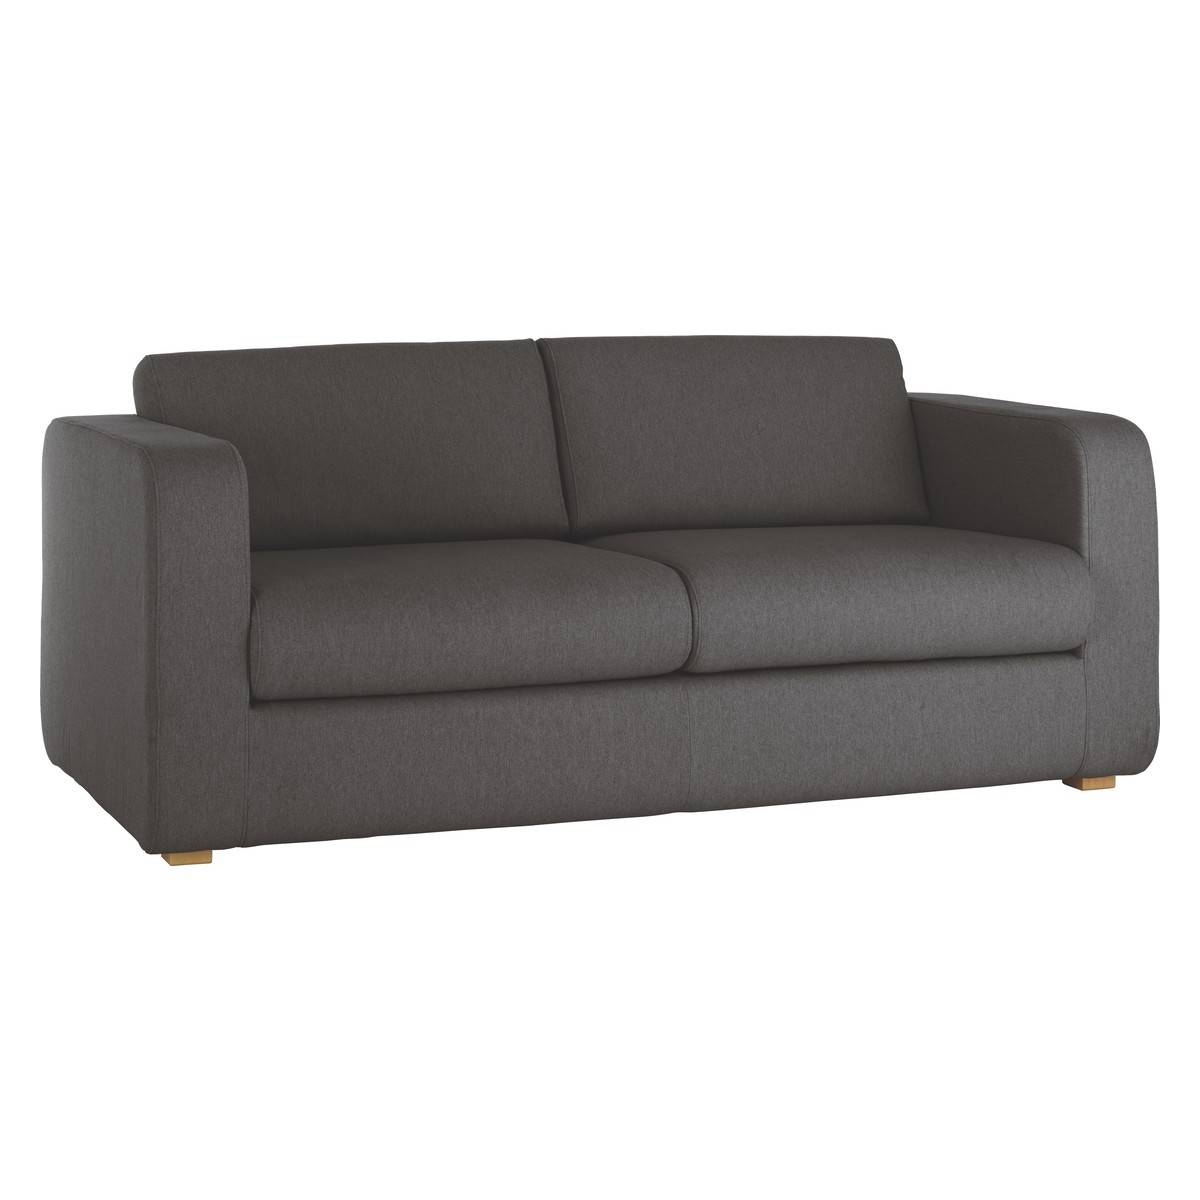 Porto Charcoal Fabric 3 Seater Sofa Bed | Buy Now At Habitat Uk with regard to Three Seater Sofas (Image 25 of 30)